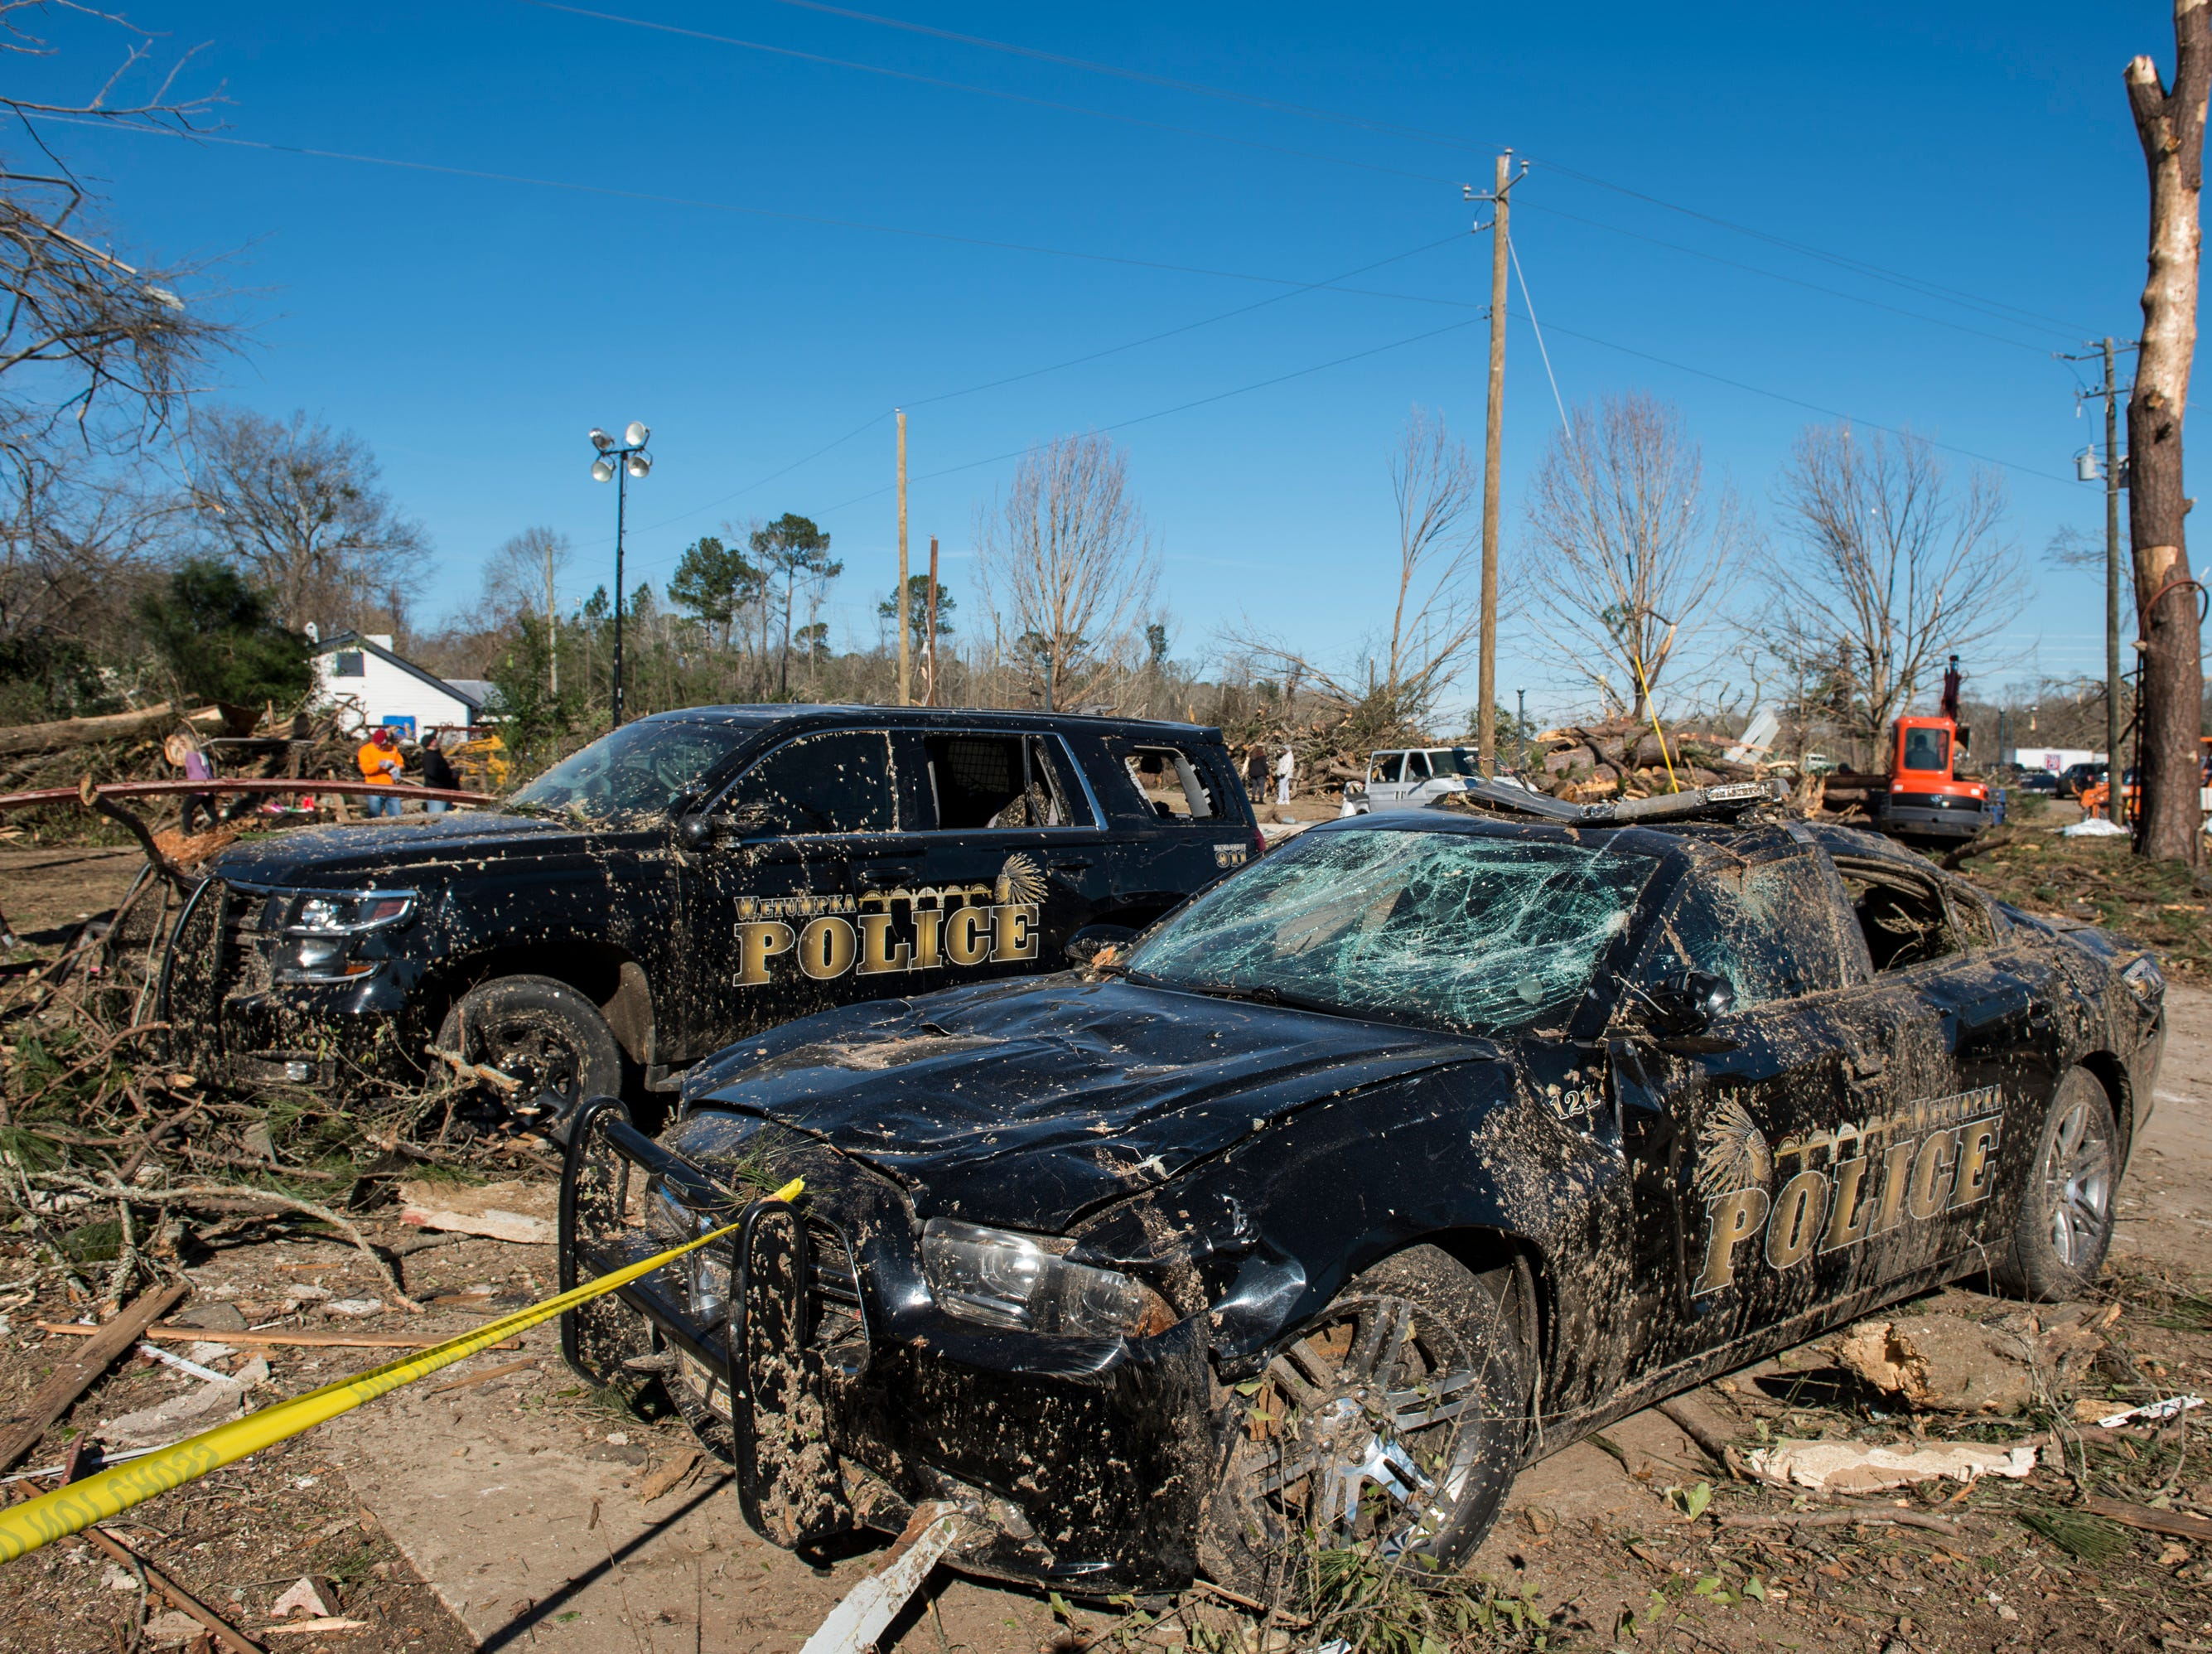 Police cars damaged in Saturday's tornado in Wetumpka, Ala., on Monday, Jan. 21, 2019.